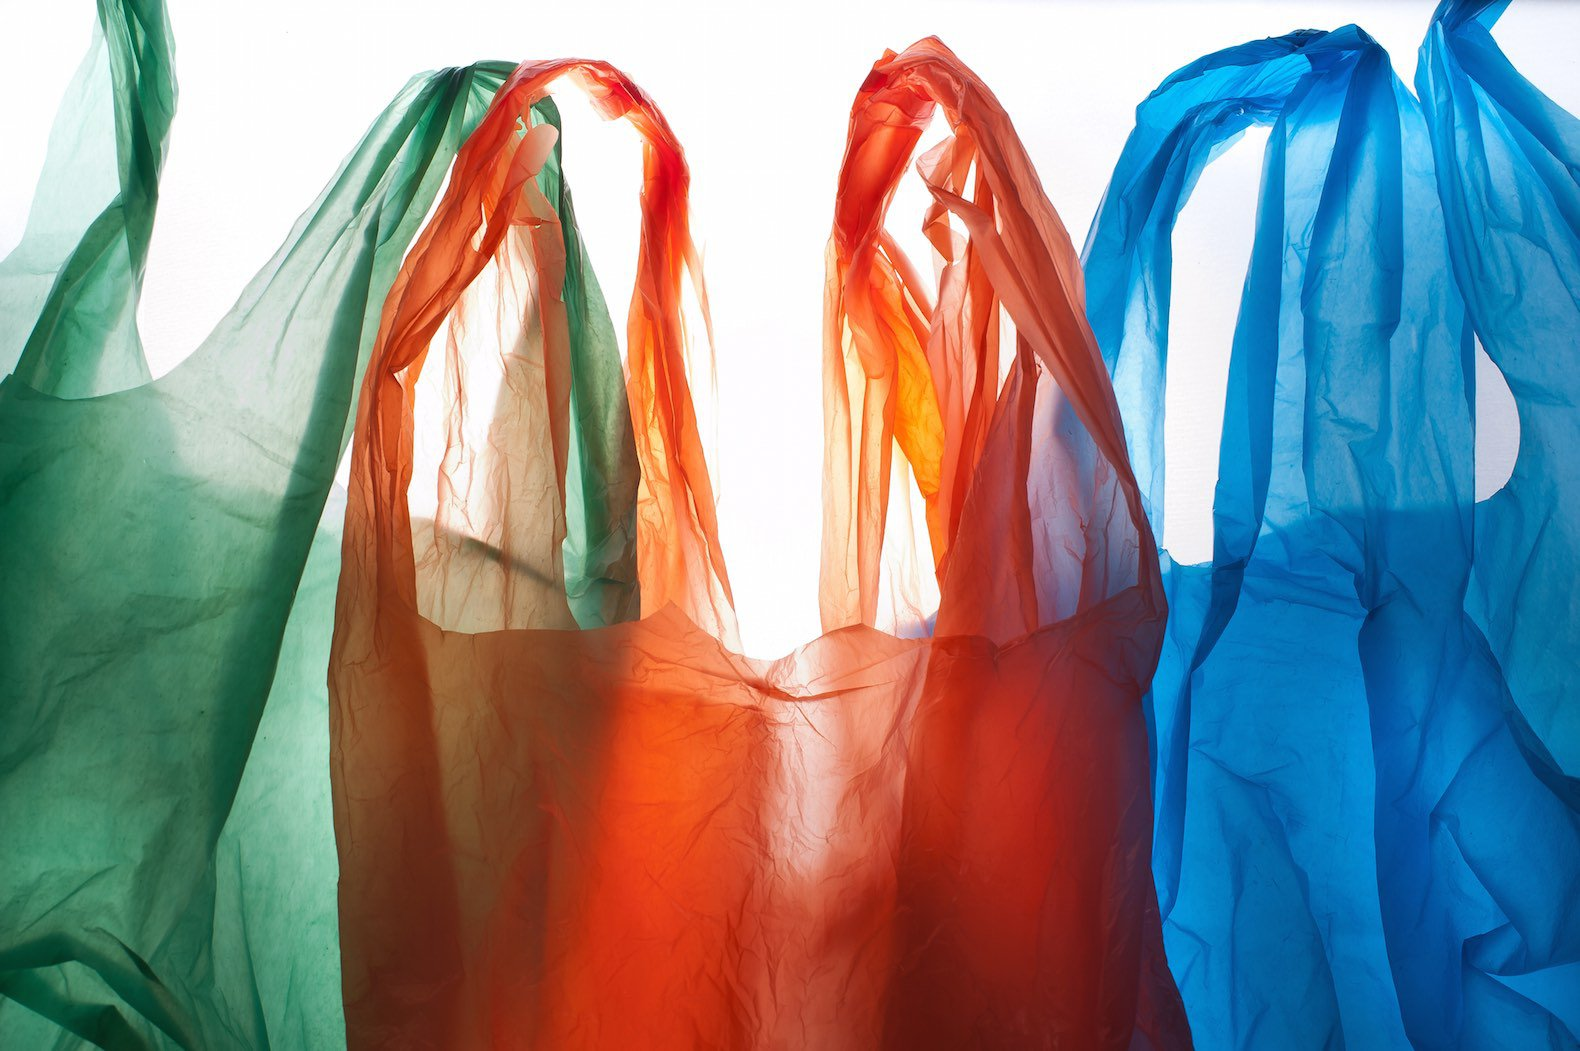 Colorful-plastic-bags-image